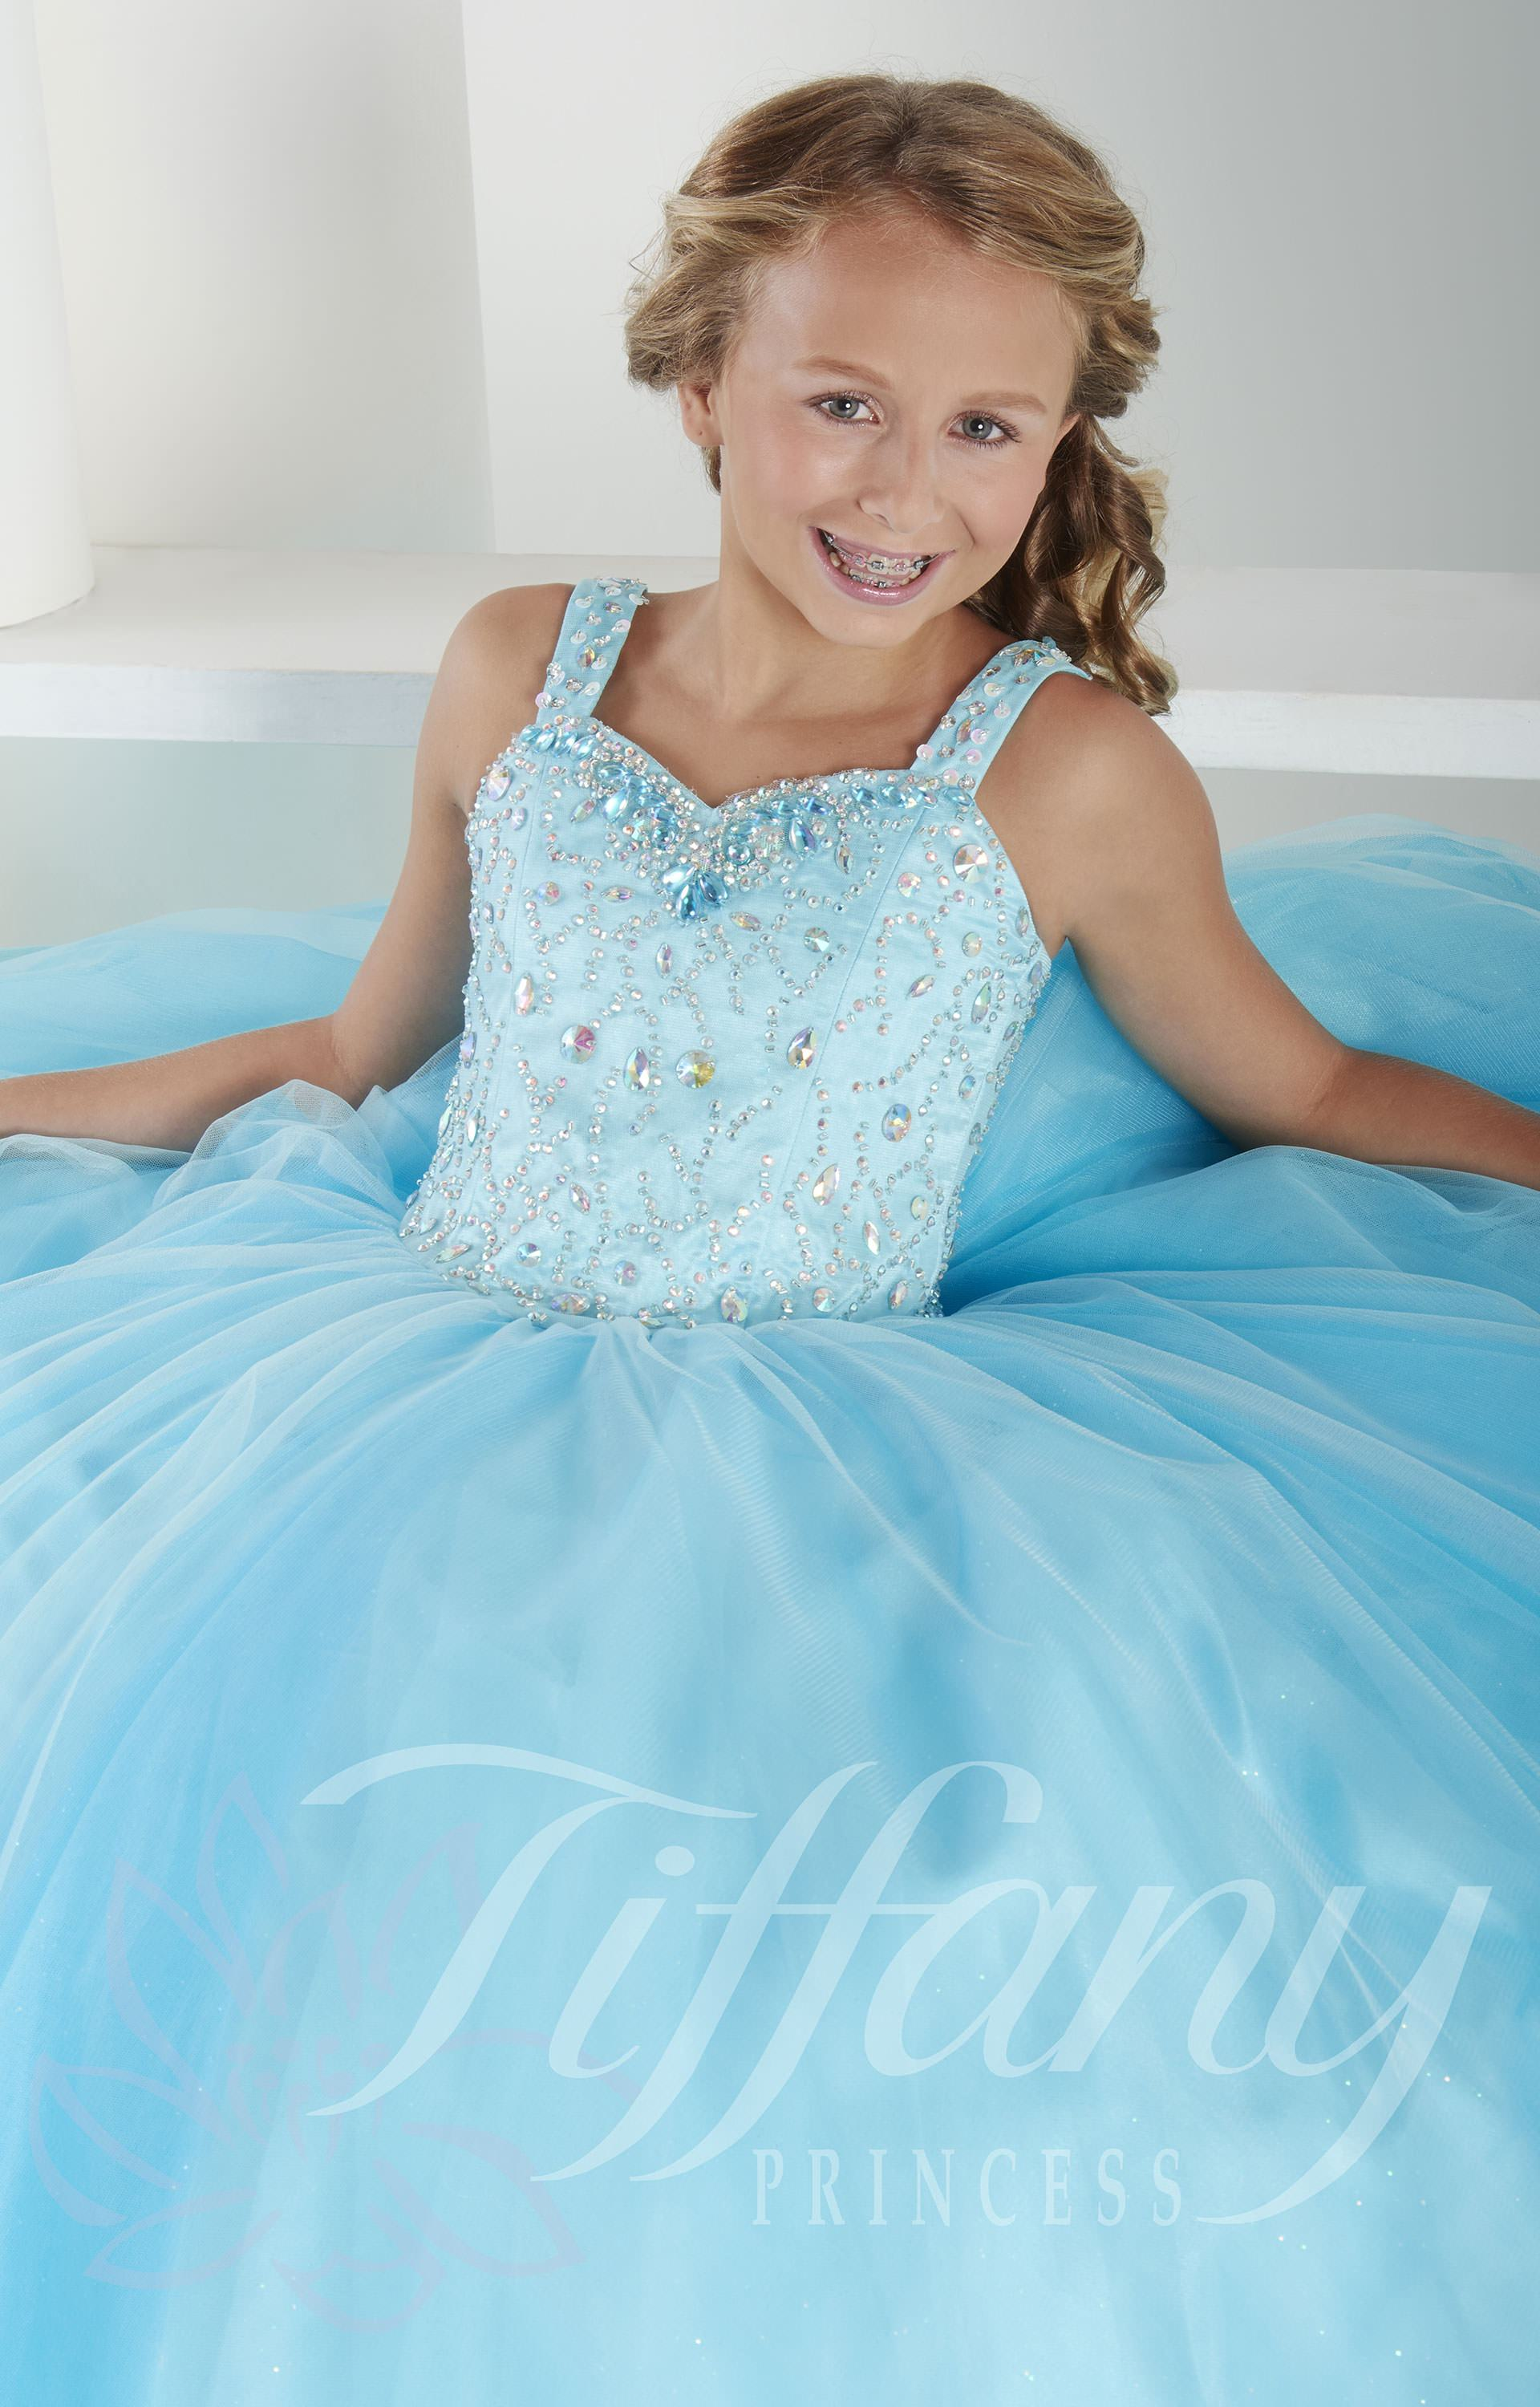 Tiffany Princess 13409  Ice Princess Dress Prom Dress